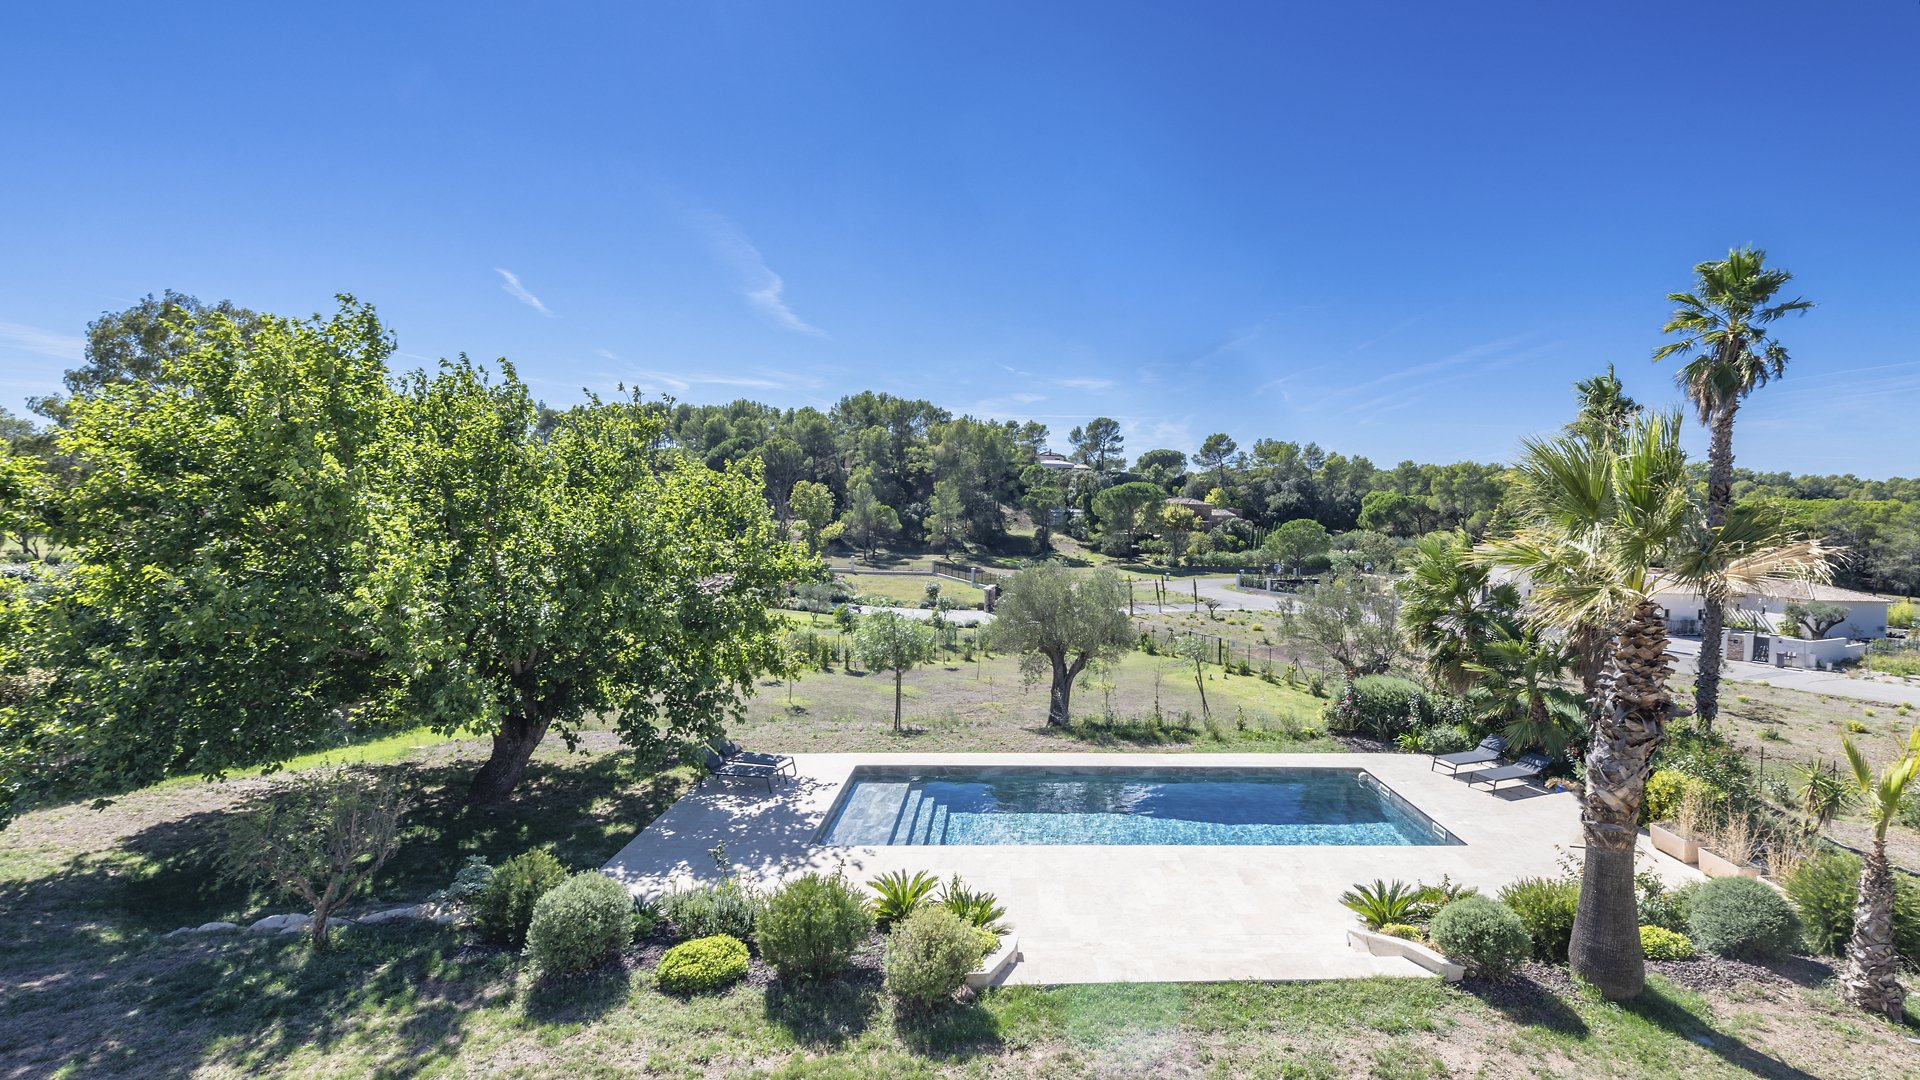 VILLA WITH POOL IN A RESIDENTIAL ESTATE AT PUGET SUR ARGENS